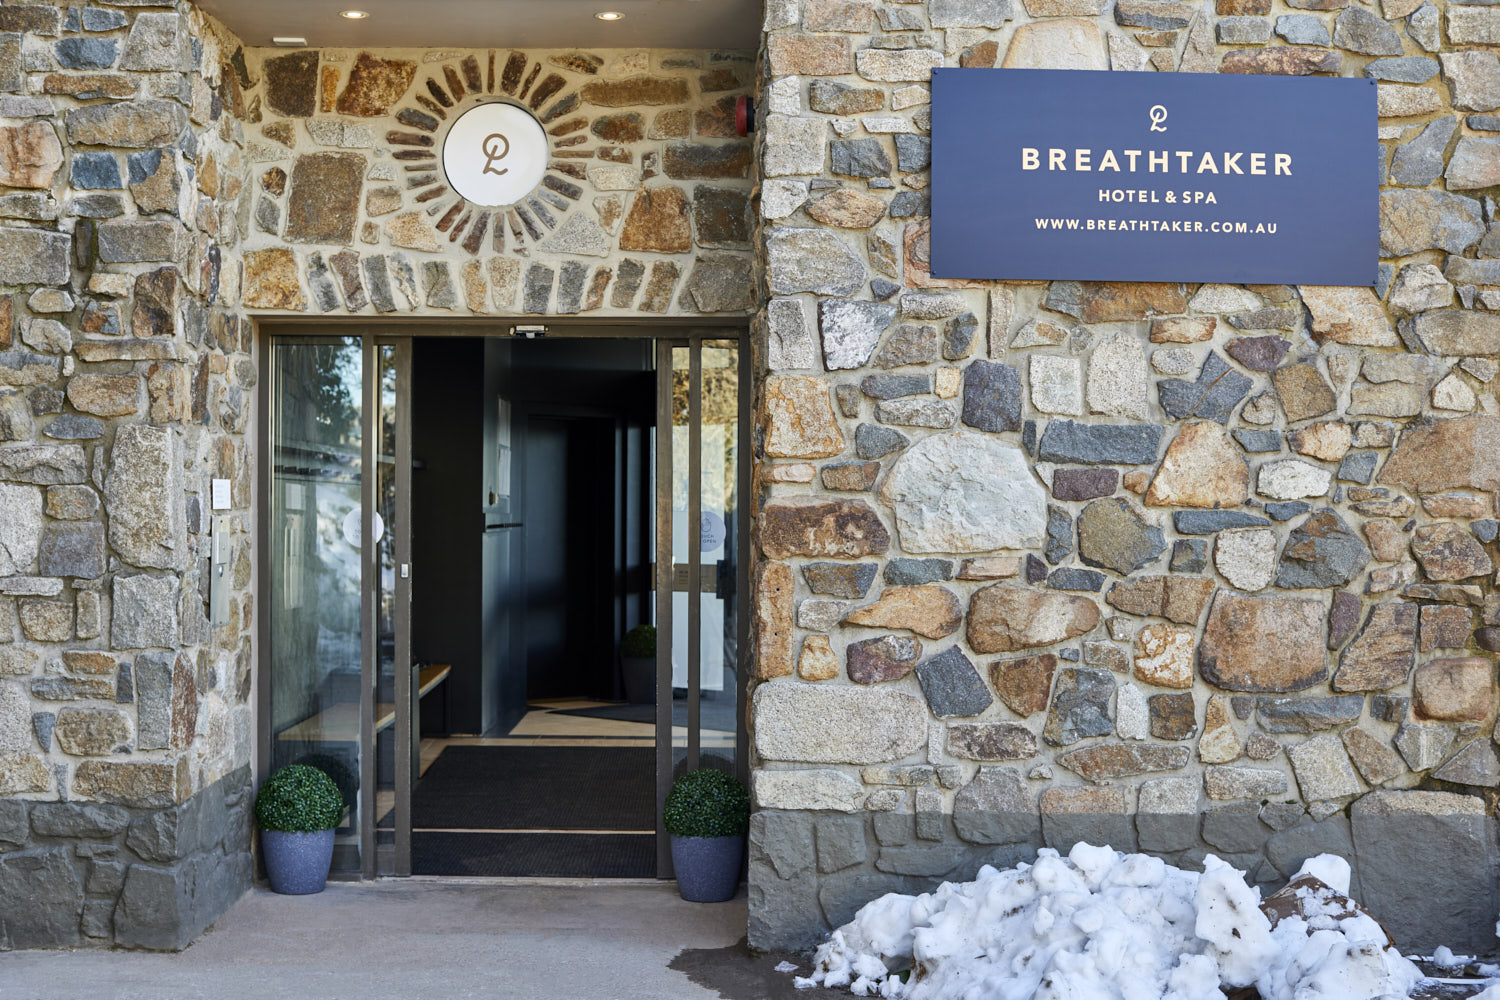 unit 401 Breathtaker Hotel and Spa MOUNT BULLER